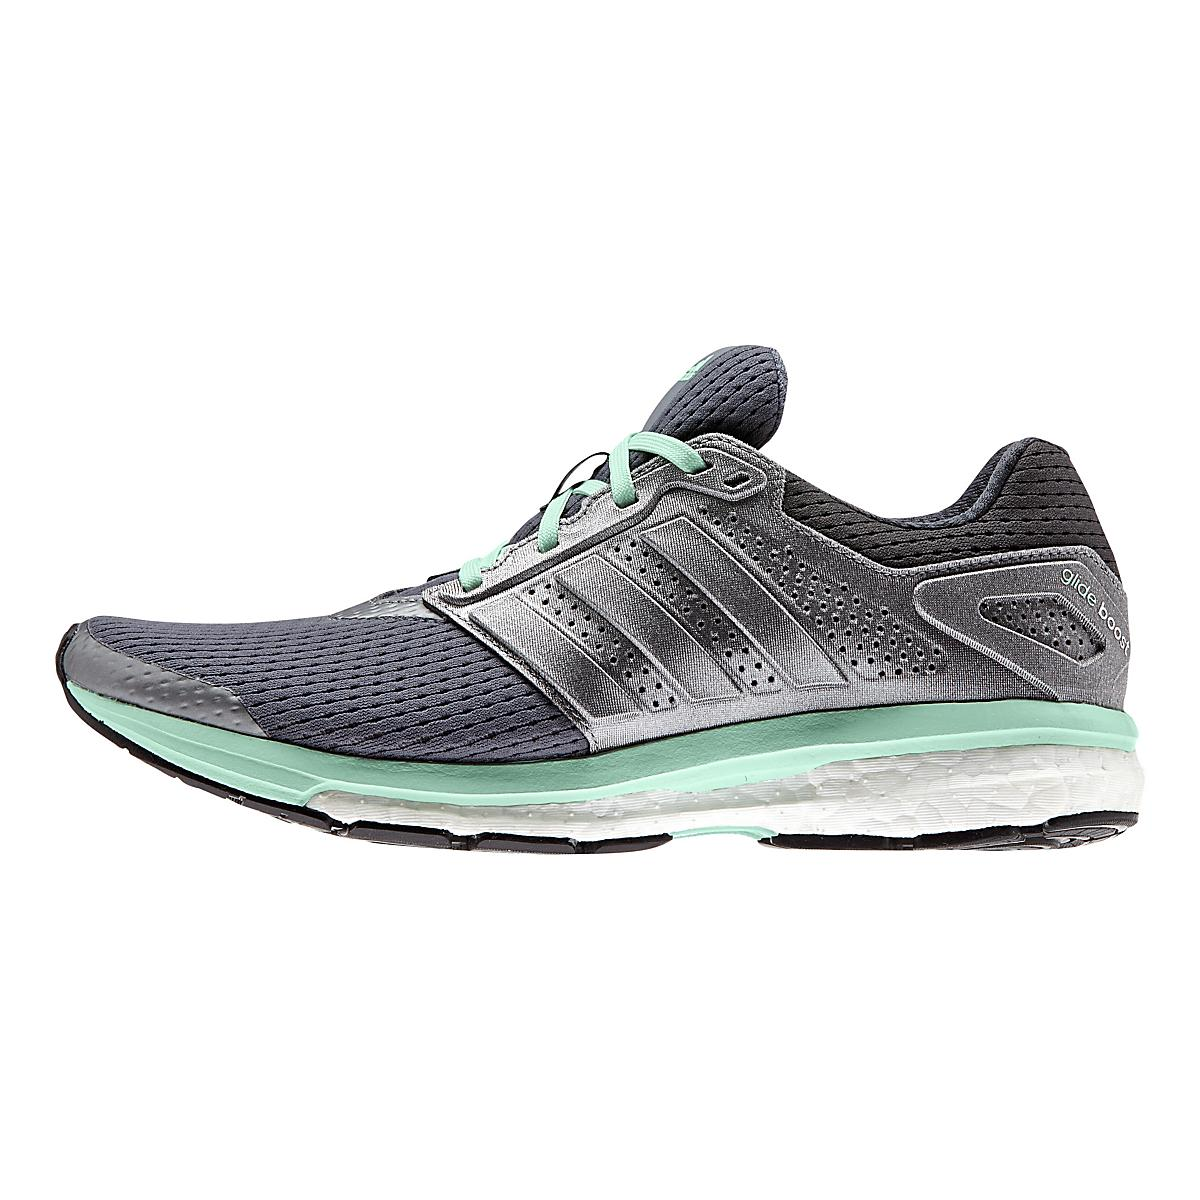 cefc85f4d Womens adidas Supernova Glide 7 Boost Running Shoe at Road Runner Sports